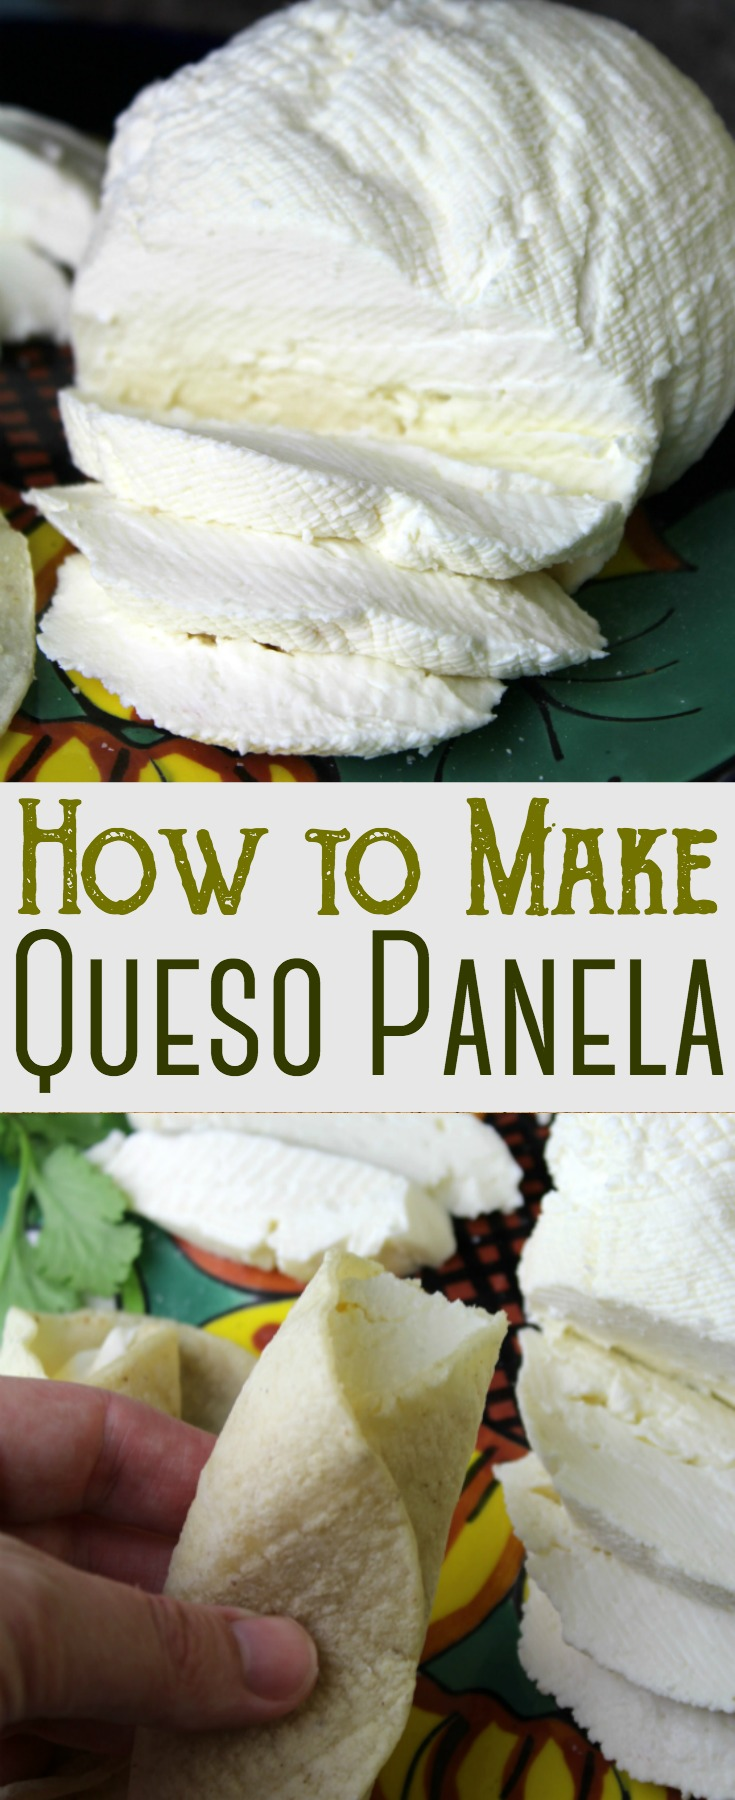 Queso Panela is a white, fresh, and smooth soft Mexican type cheese made with raw milk. Not only is it delicious, it's easy to make at home!